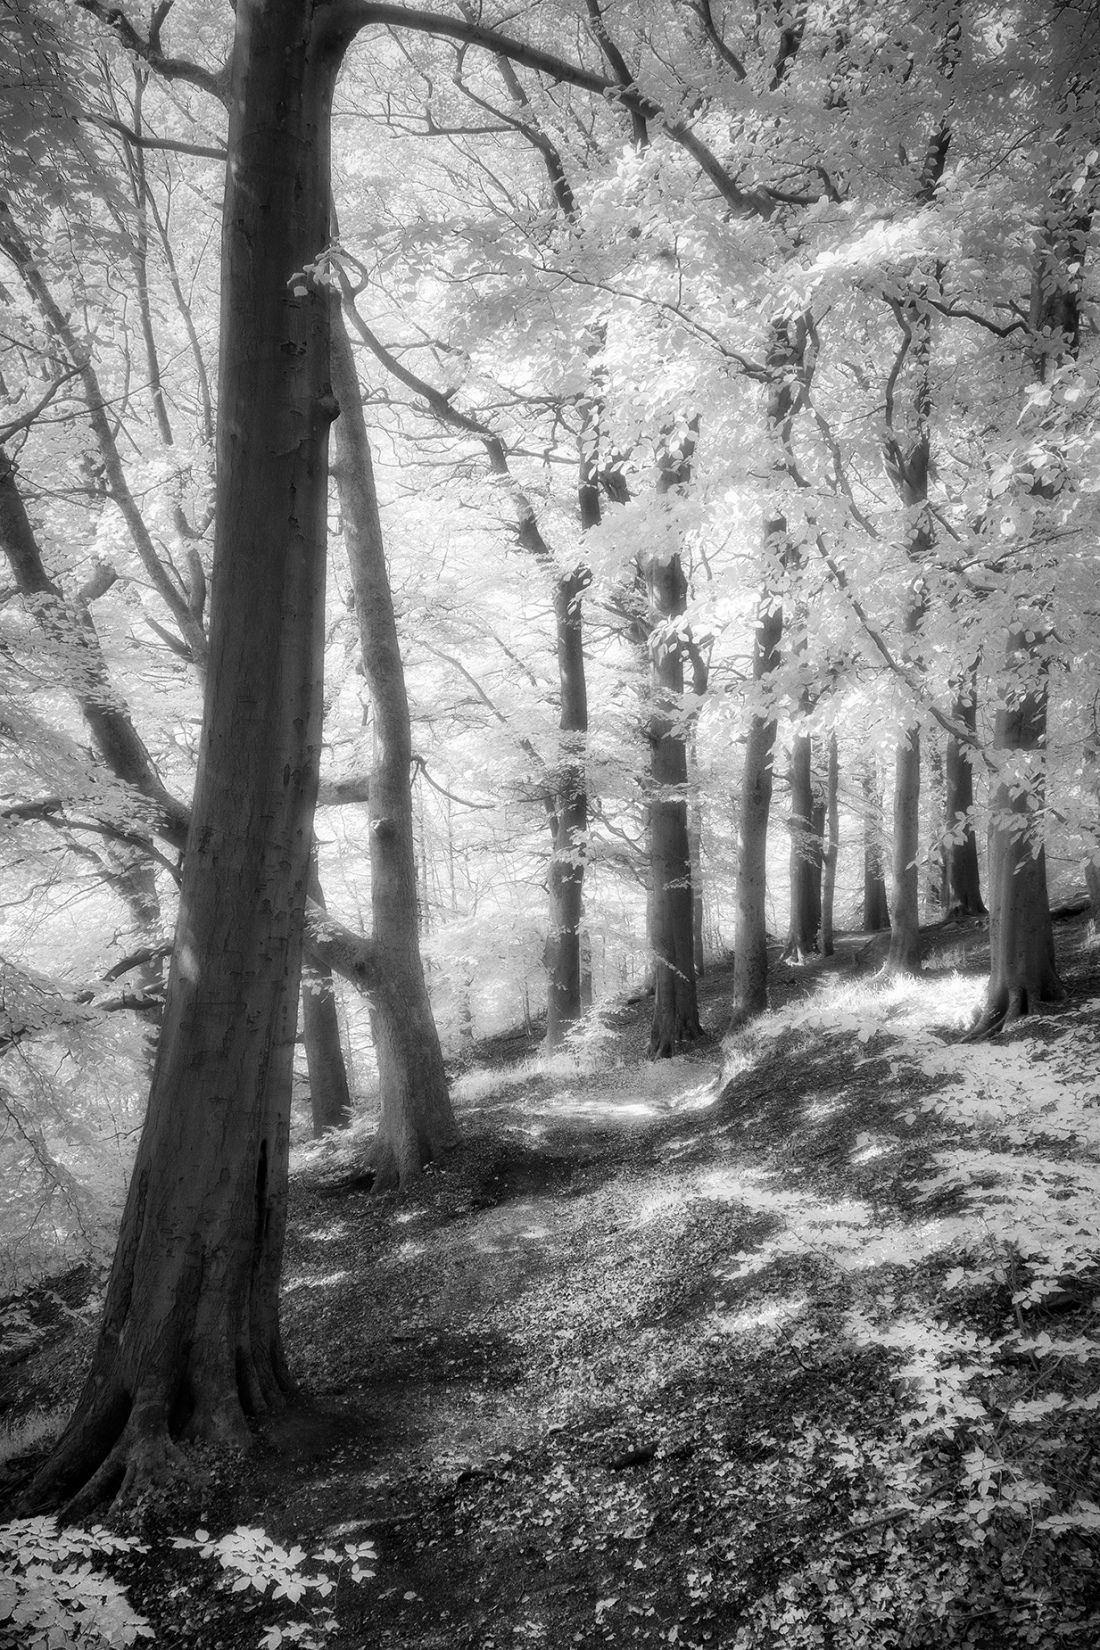 Woodland in infrared.